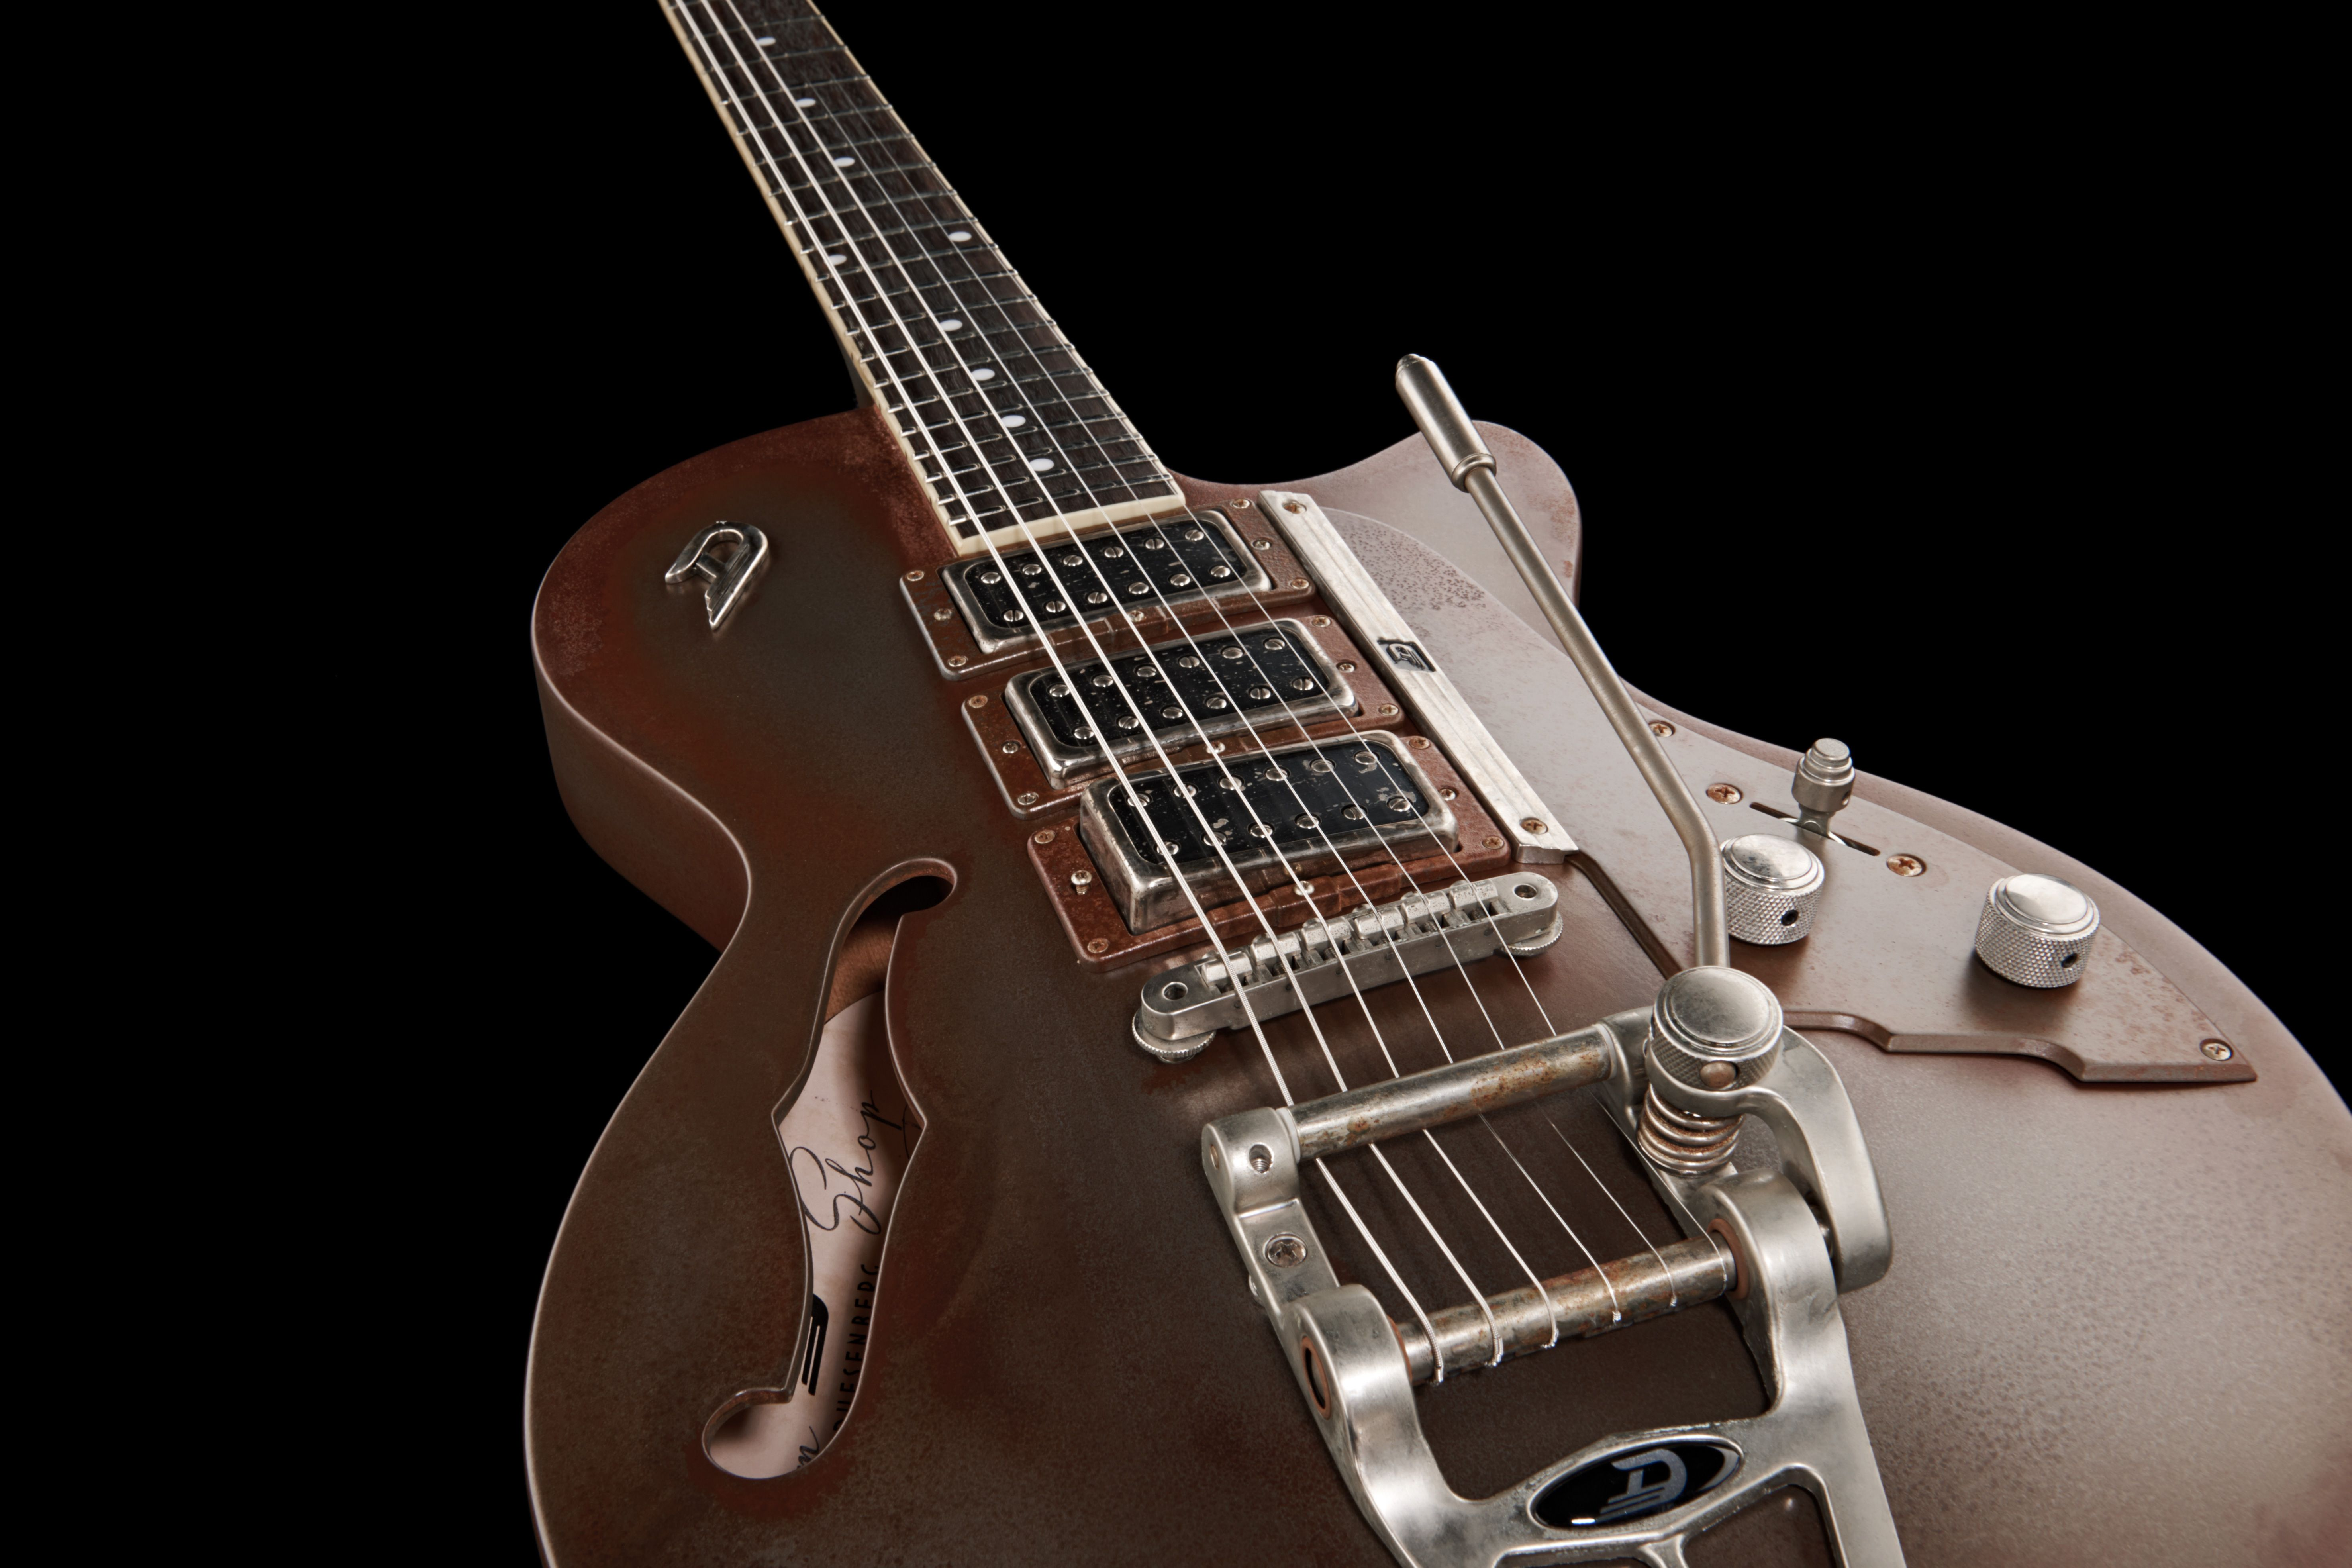 Duesenberg StarplayerTV CMRS Custom Shop. The basis of this custom shop model is the Starplayer TV-Custom and its completely covered in a real thomann metal coating which is well into its rusting process. #duesenberg #guitar #thomann #customShop